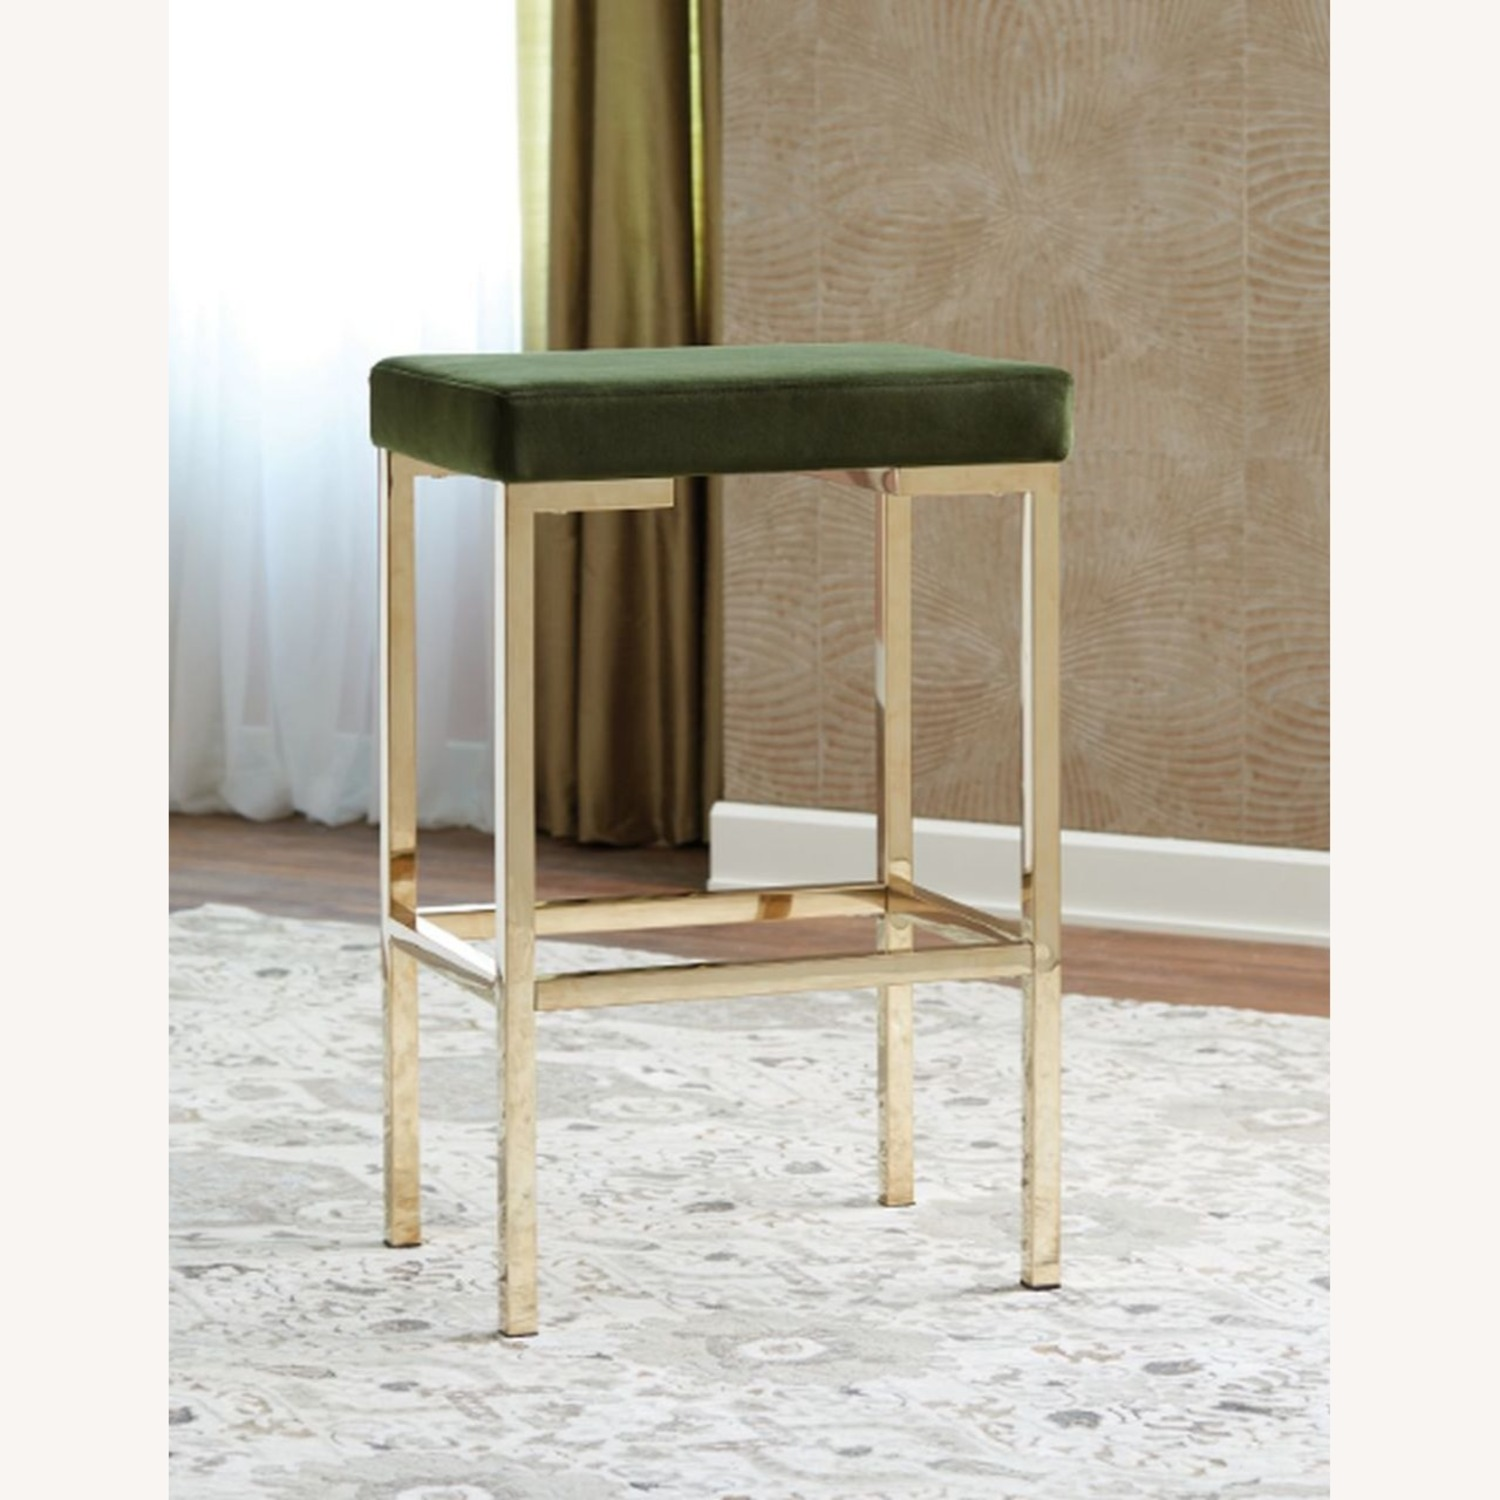 Minimalist Bar Stool In Green W/ Rose Brass Base - image-2